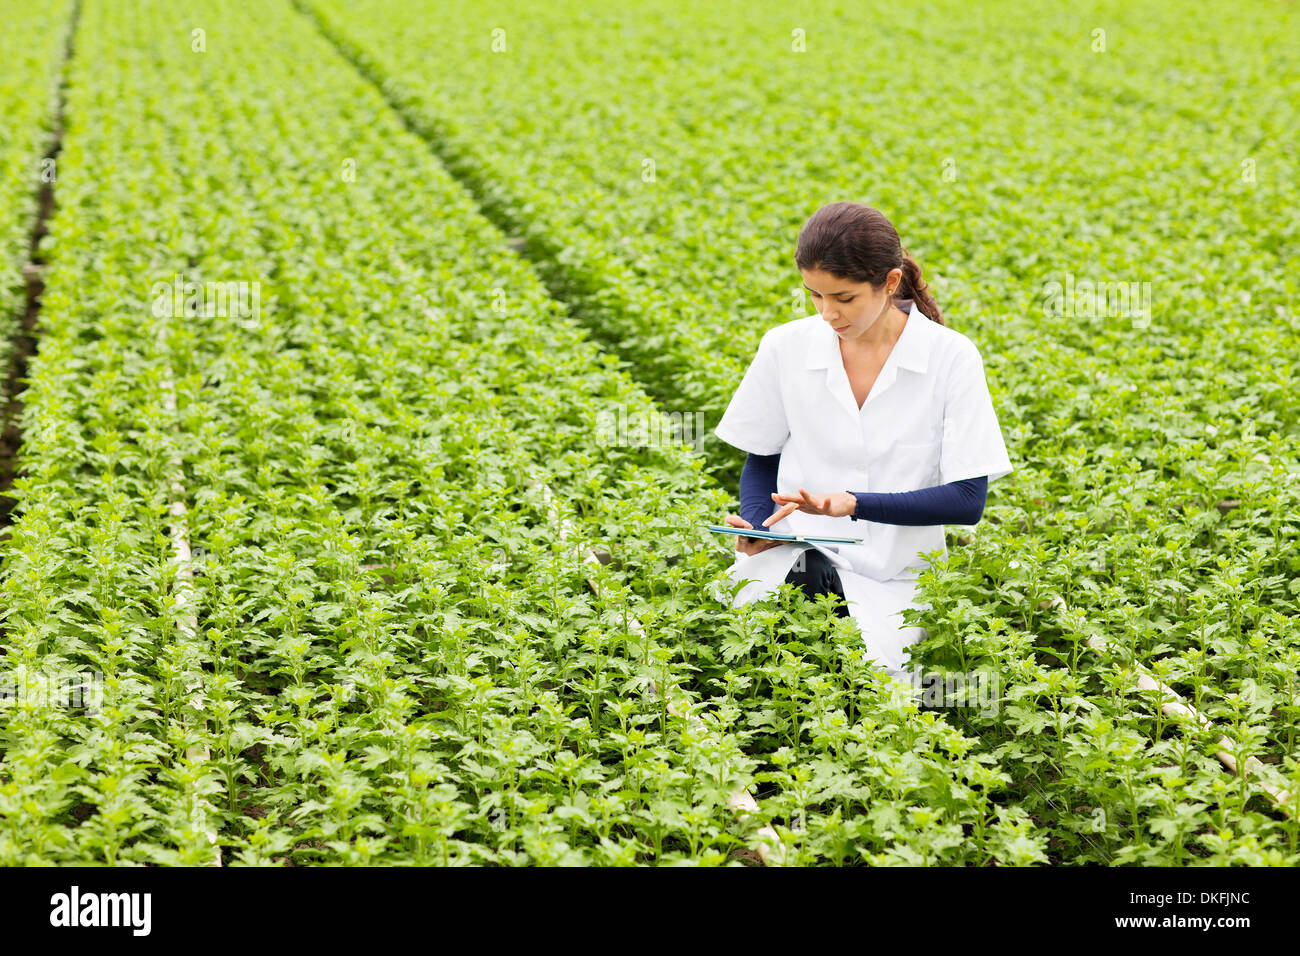 Scientist in rows of plants in greenhouse, holding digital tablet - Stock Image